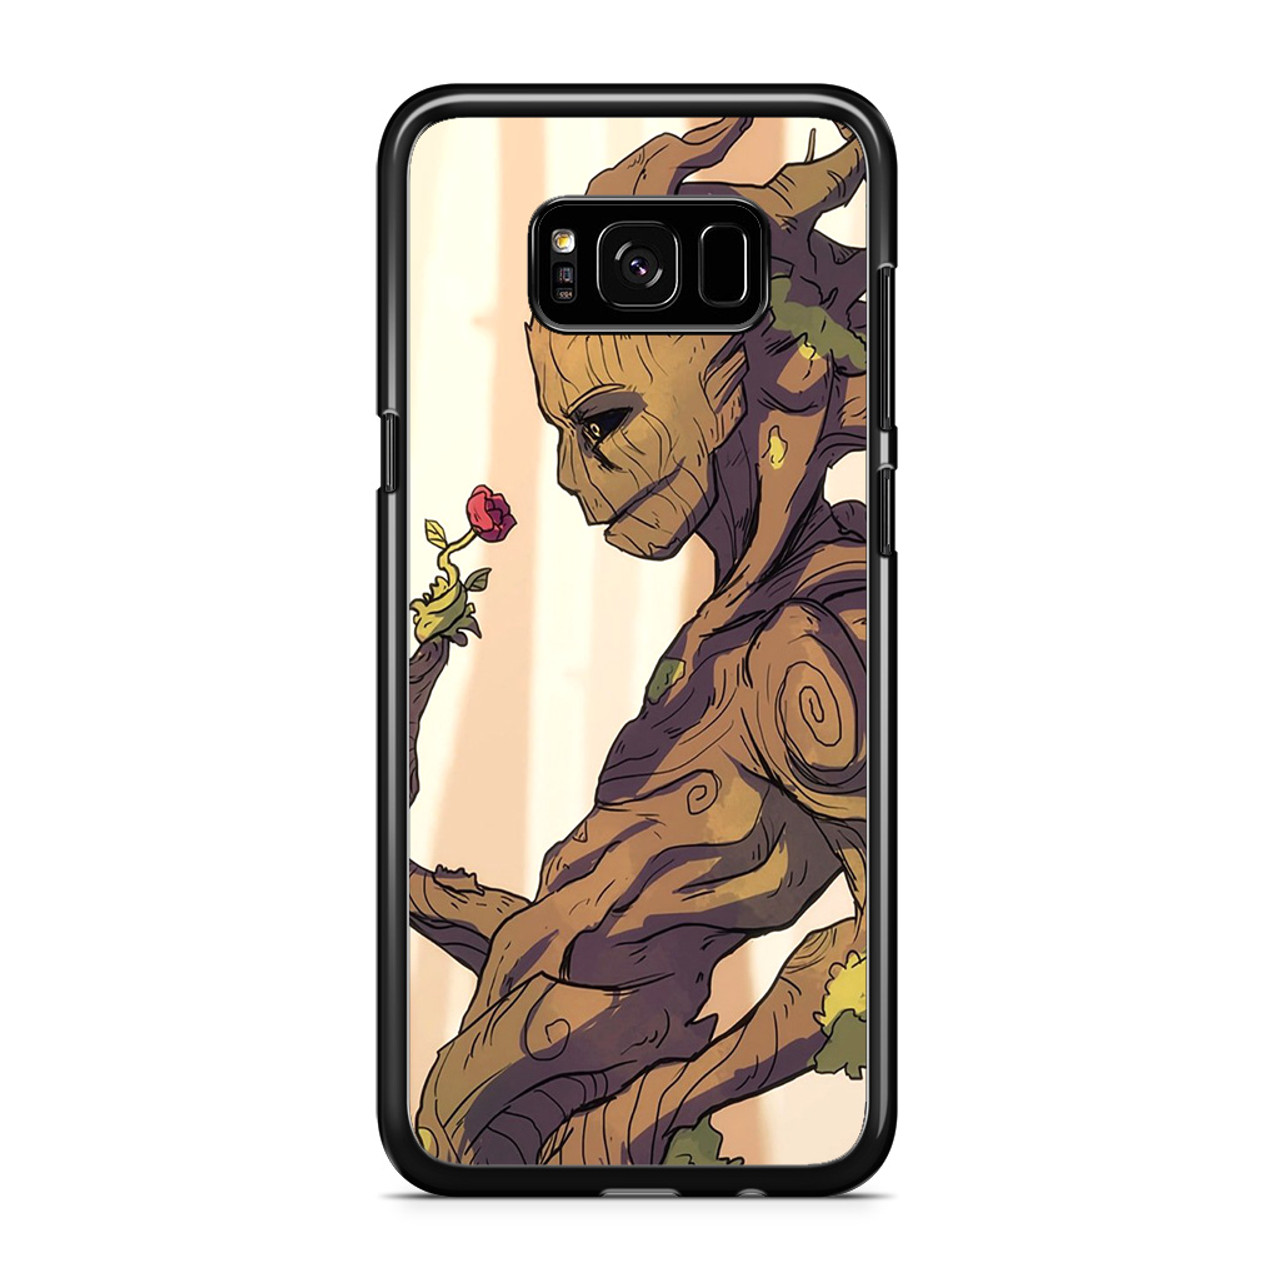 groot phone case samsung s8